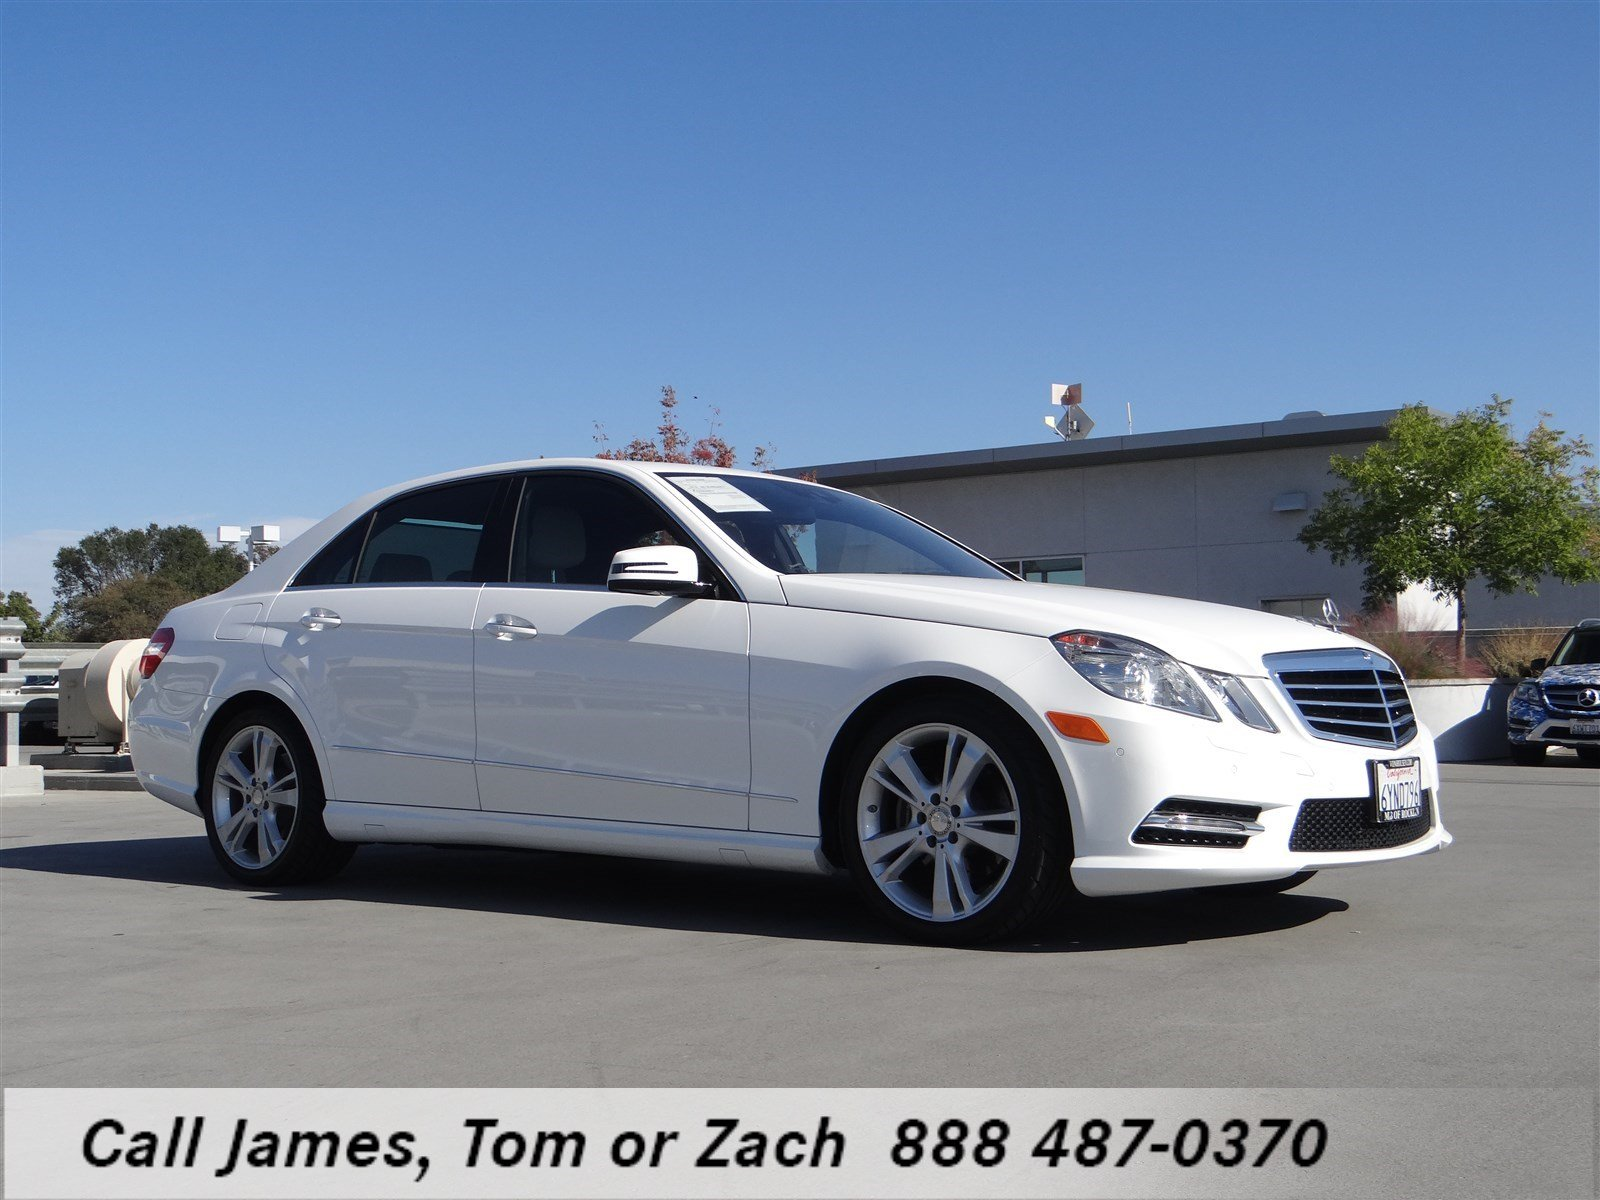 Pre owned 2013 mercedes benz e class e350 4dr car in for Pre owned e class mercedes benz